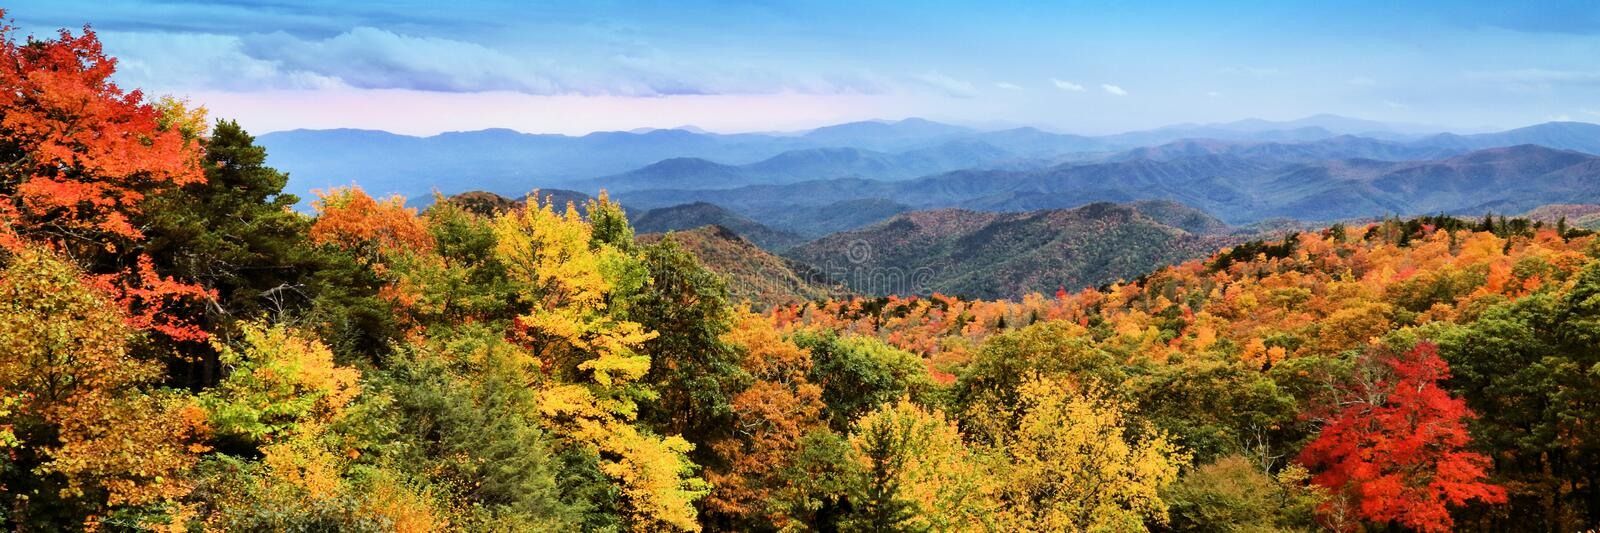 Brilliant peak autumn color of the Appalachian Mountains in North Carolina royalty free stock image